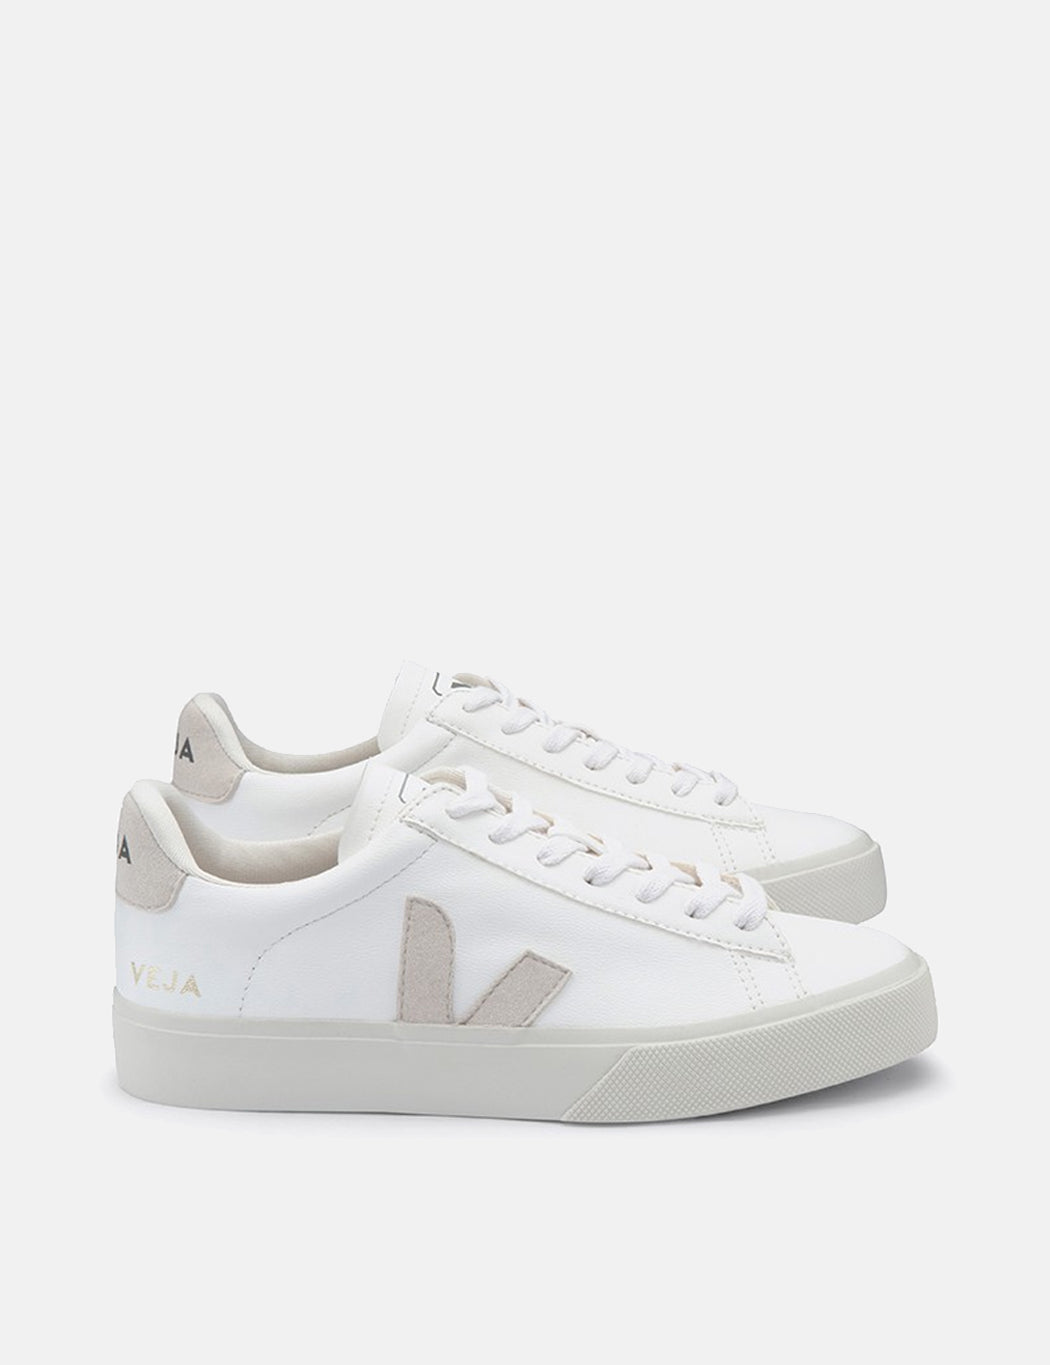 Veja Campo Trainers (Chrome Free) - White/Natural | URBAN EXCESS.